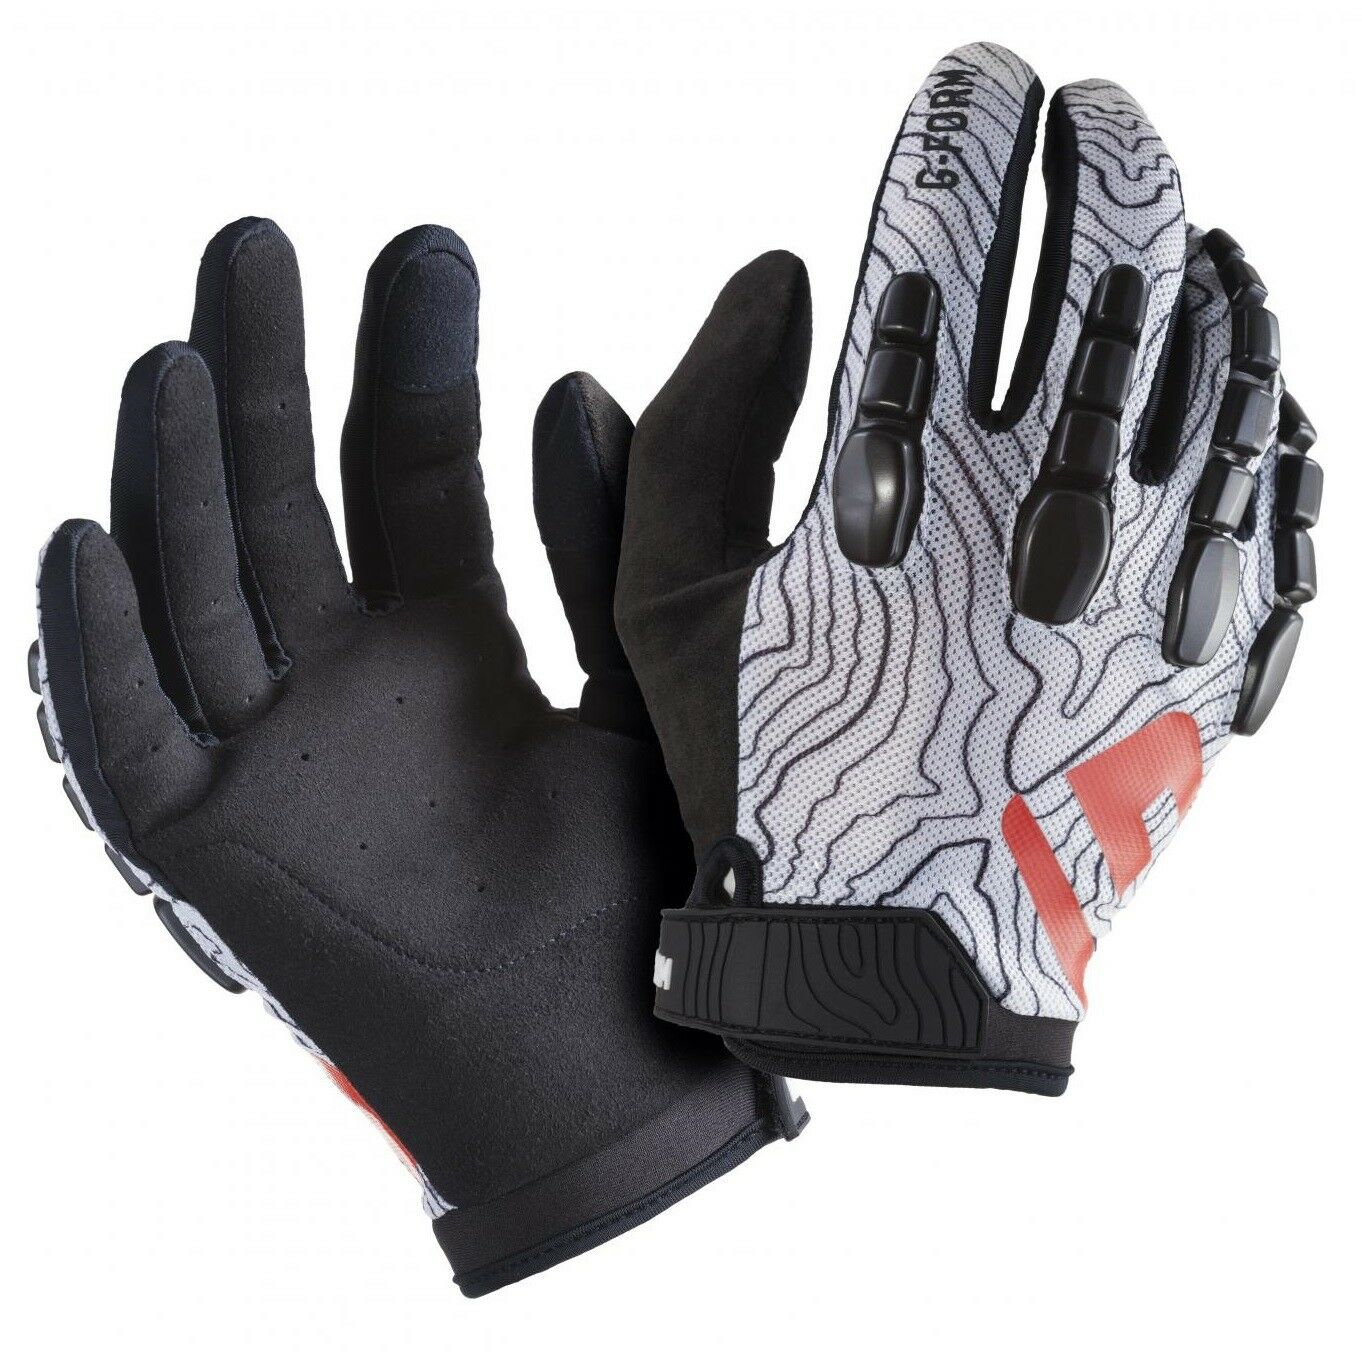 G-Form Pro Trail Gloves Handschuhe Fahrrad Bike Downhill Protection Freeride